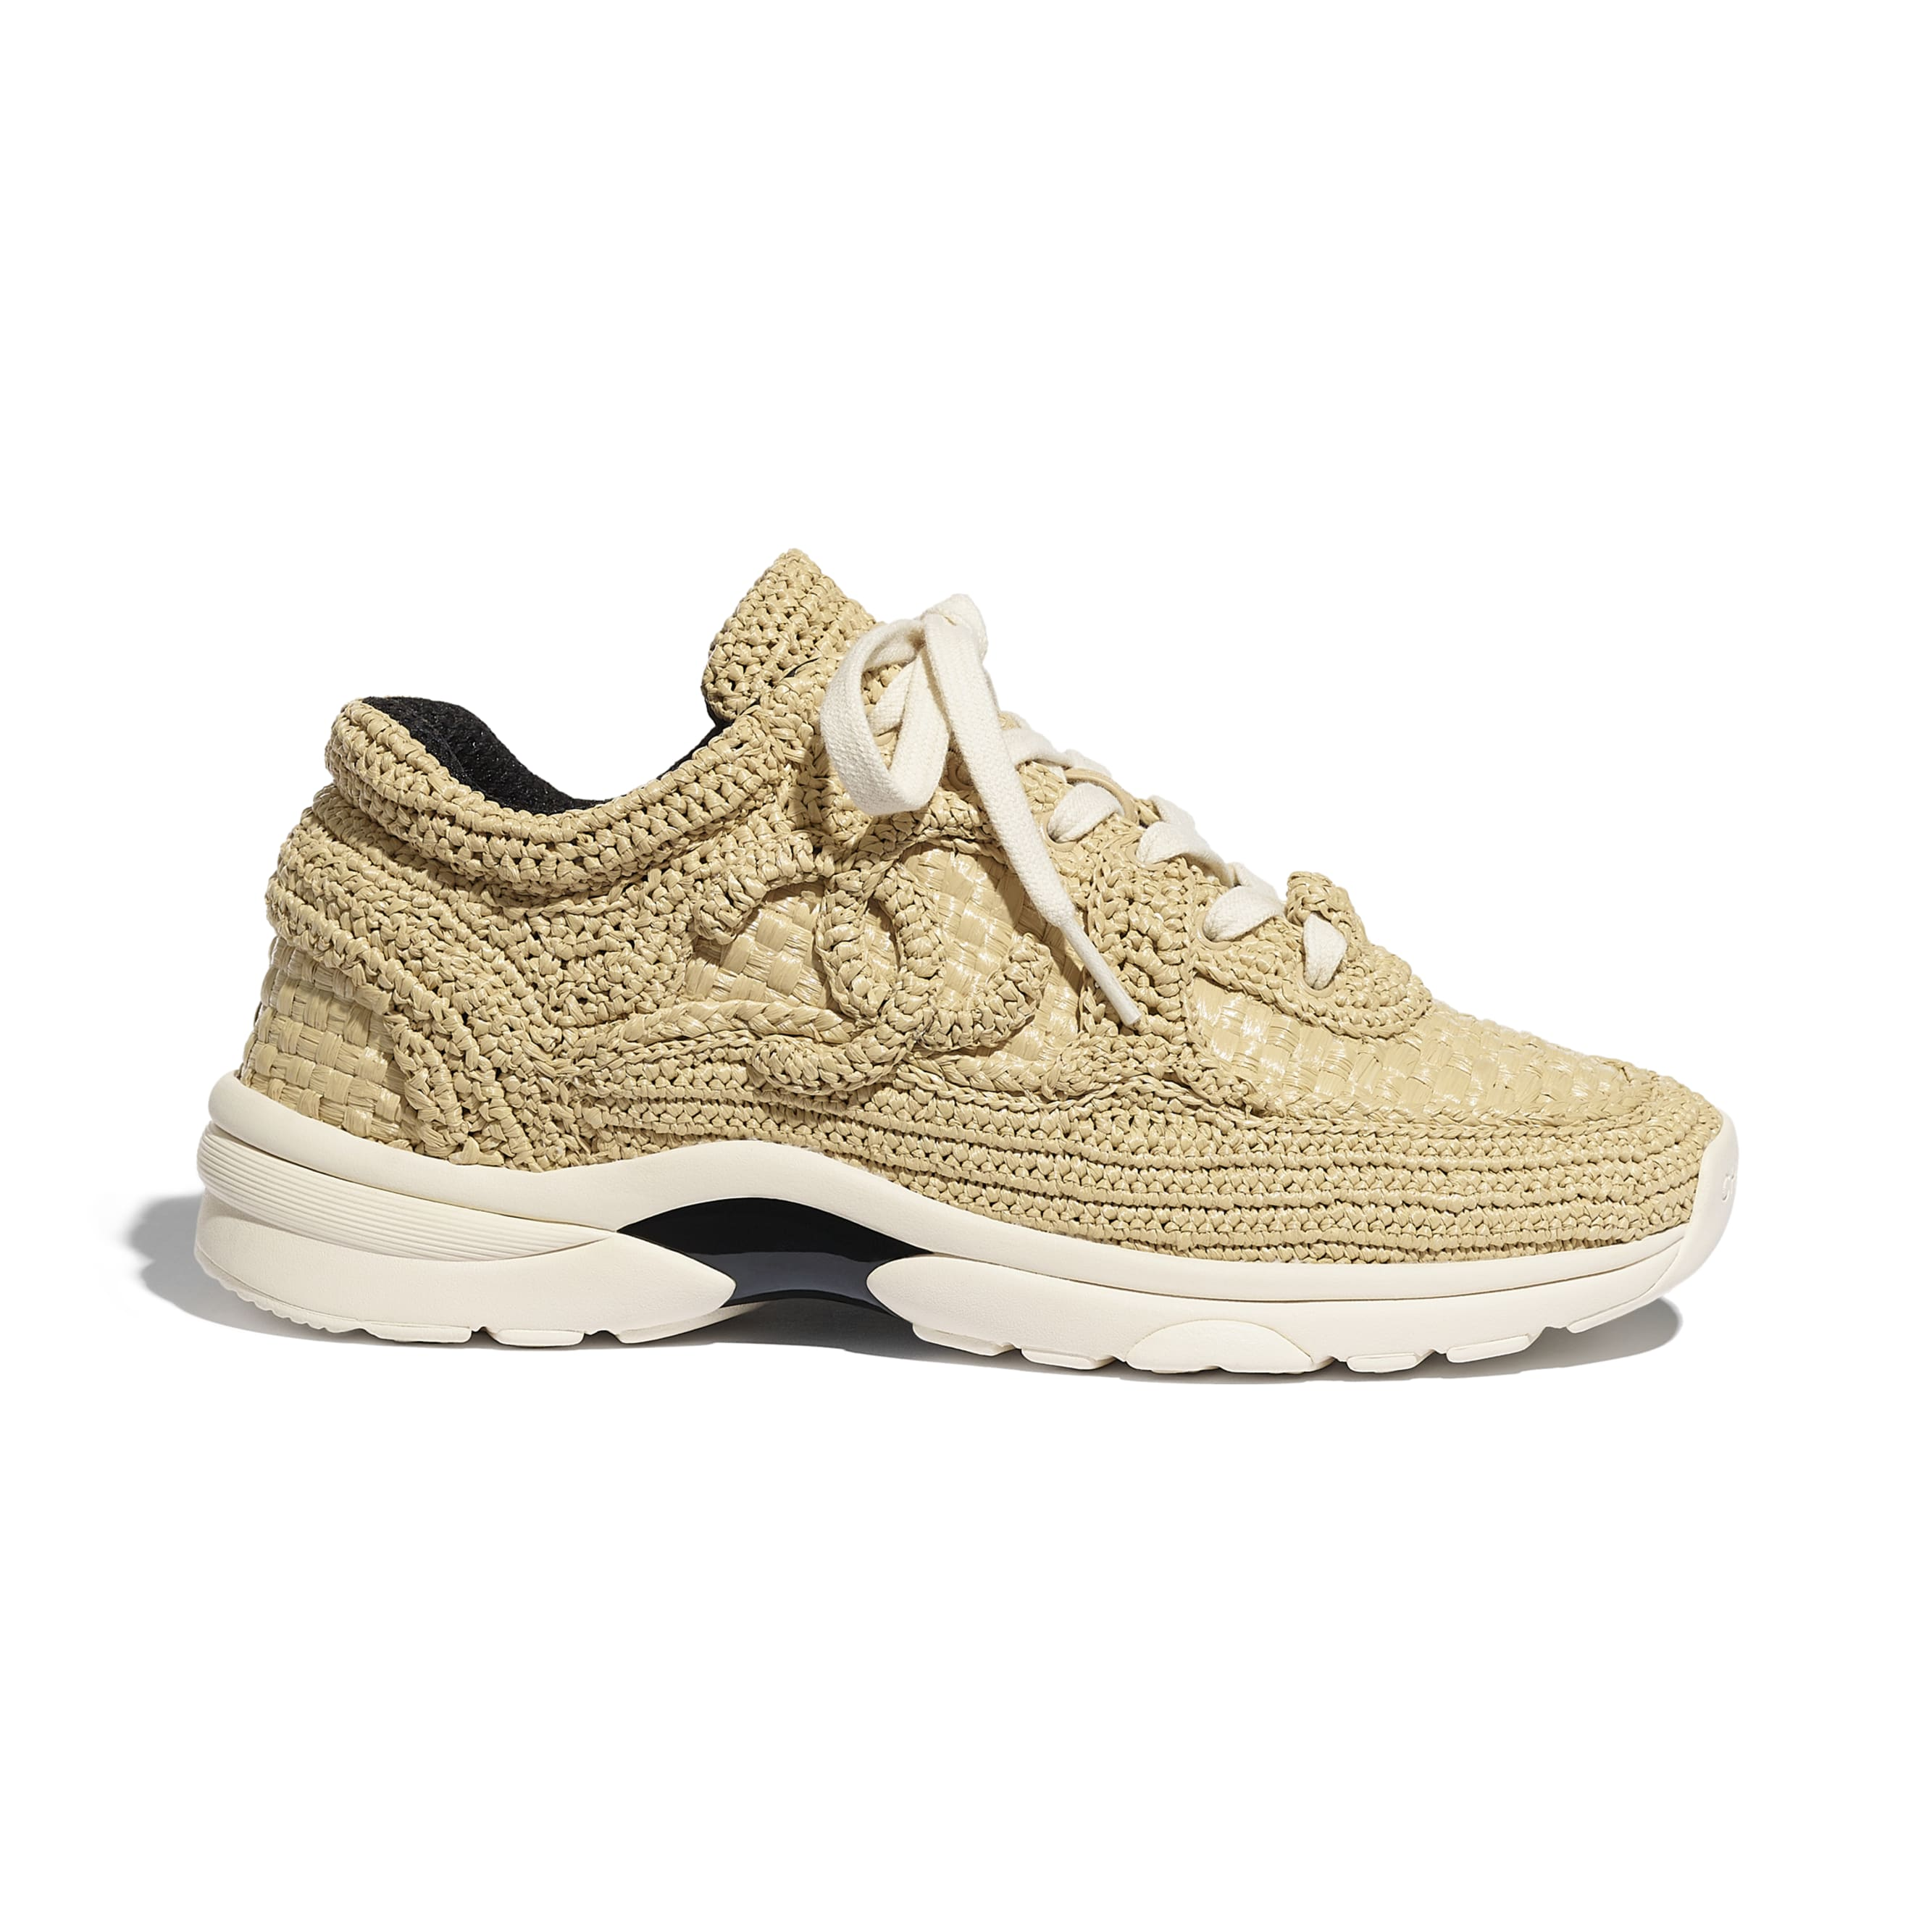 Trainers - Beige - Braided Raffia - CHANEL - Default view - see standard sized version